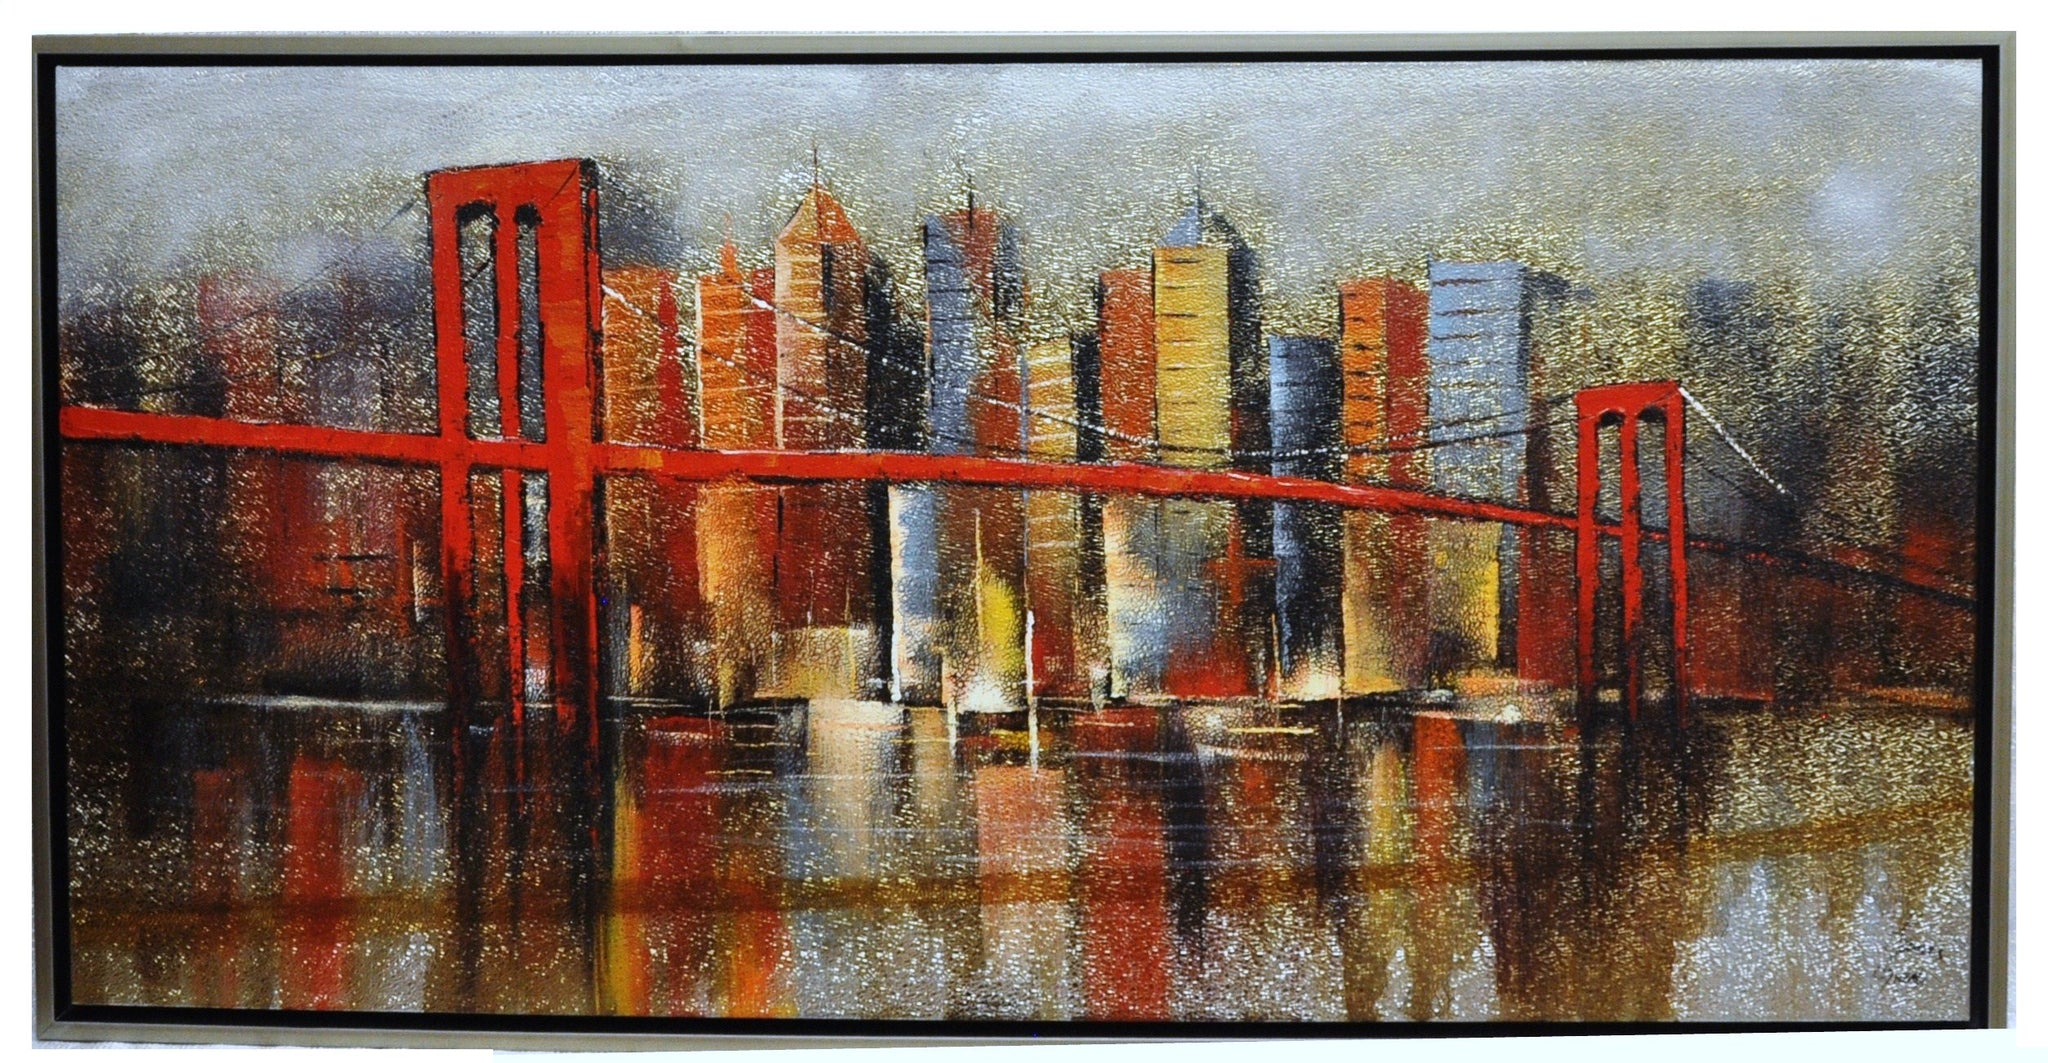 Golden Gate Bridge Painting - Wall Décor - themayacompany